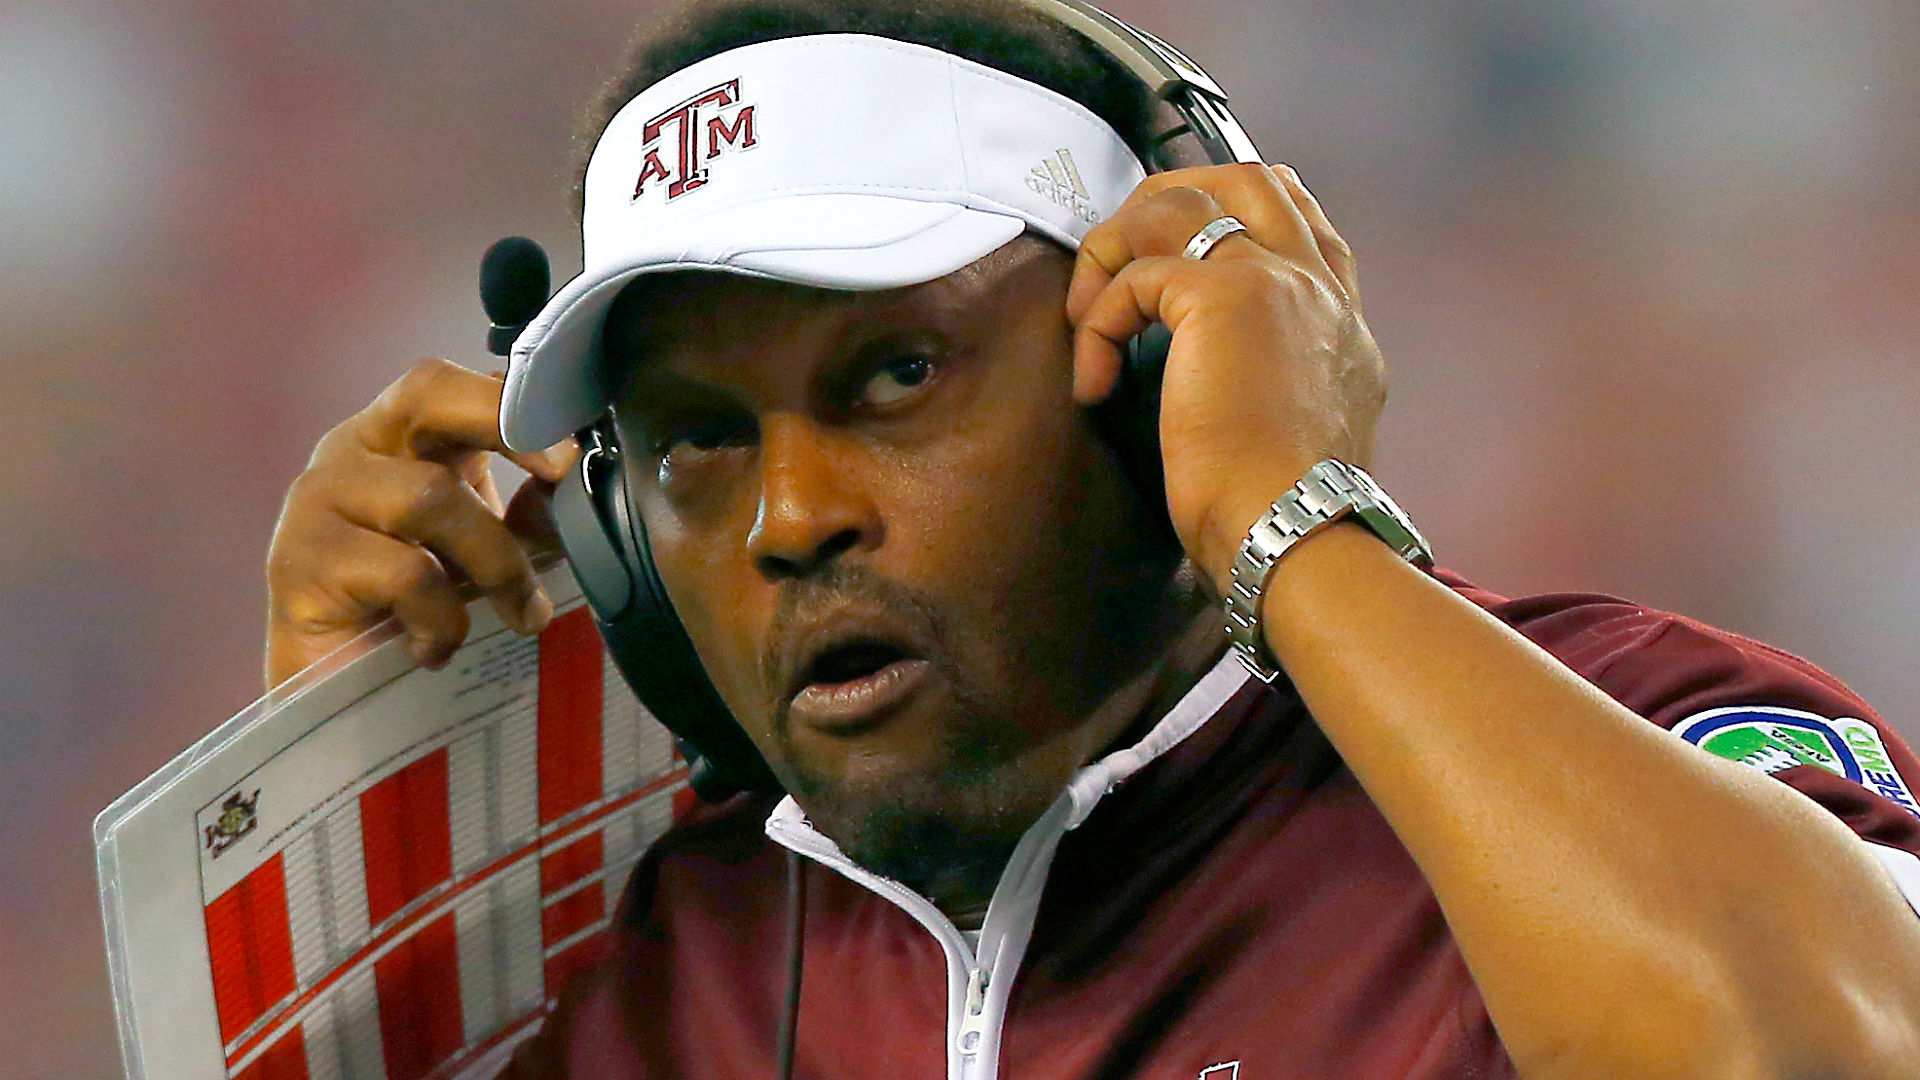 sumlin-kevin112814-getty-ftr.jpg